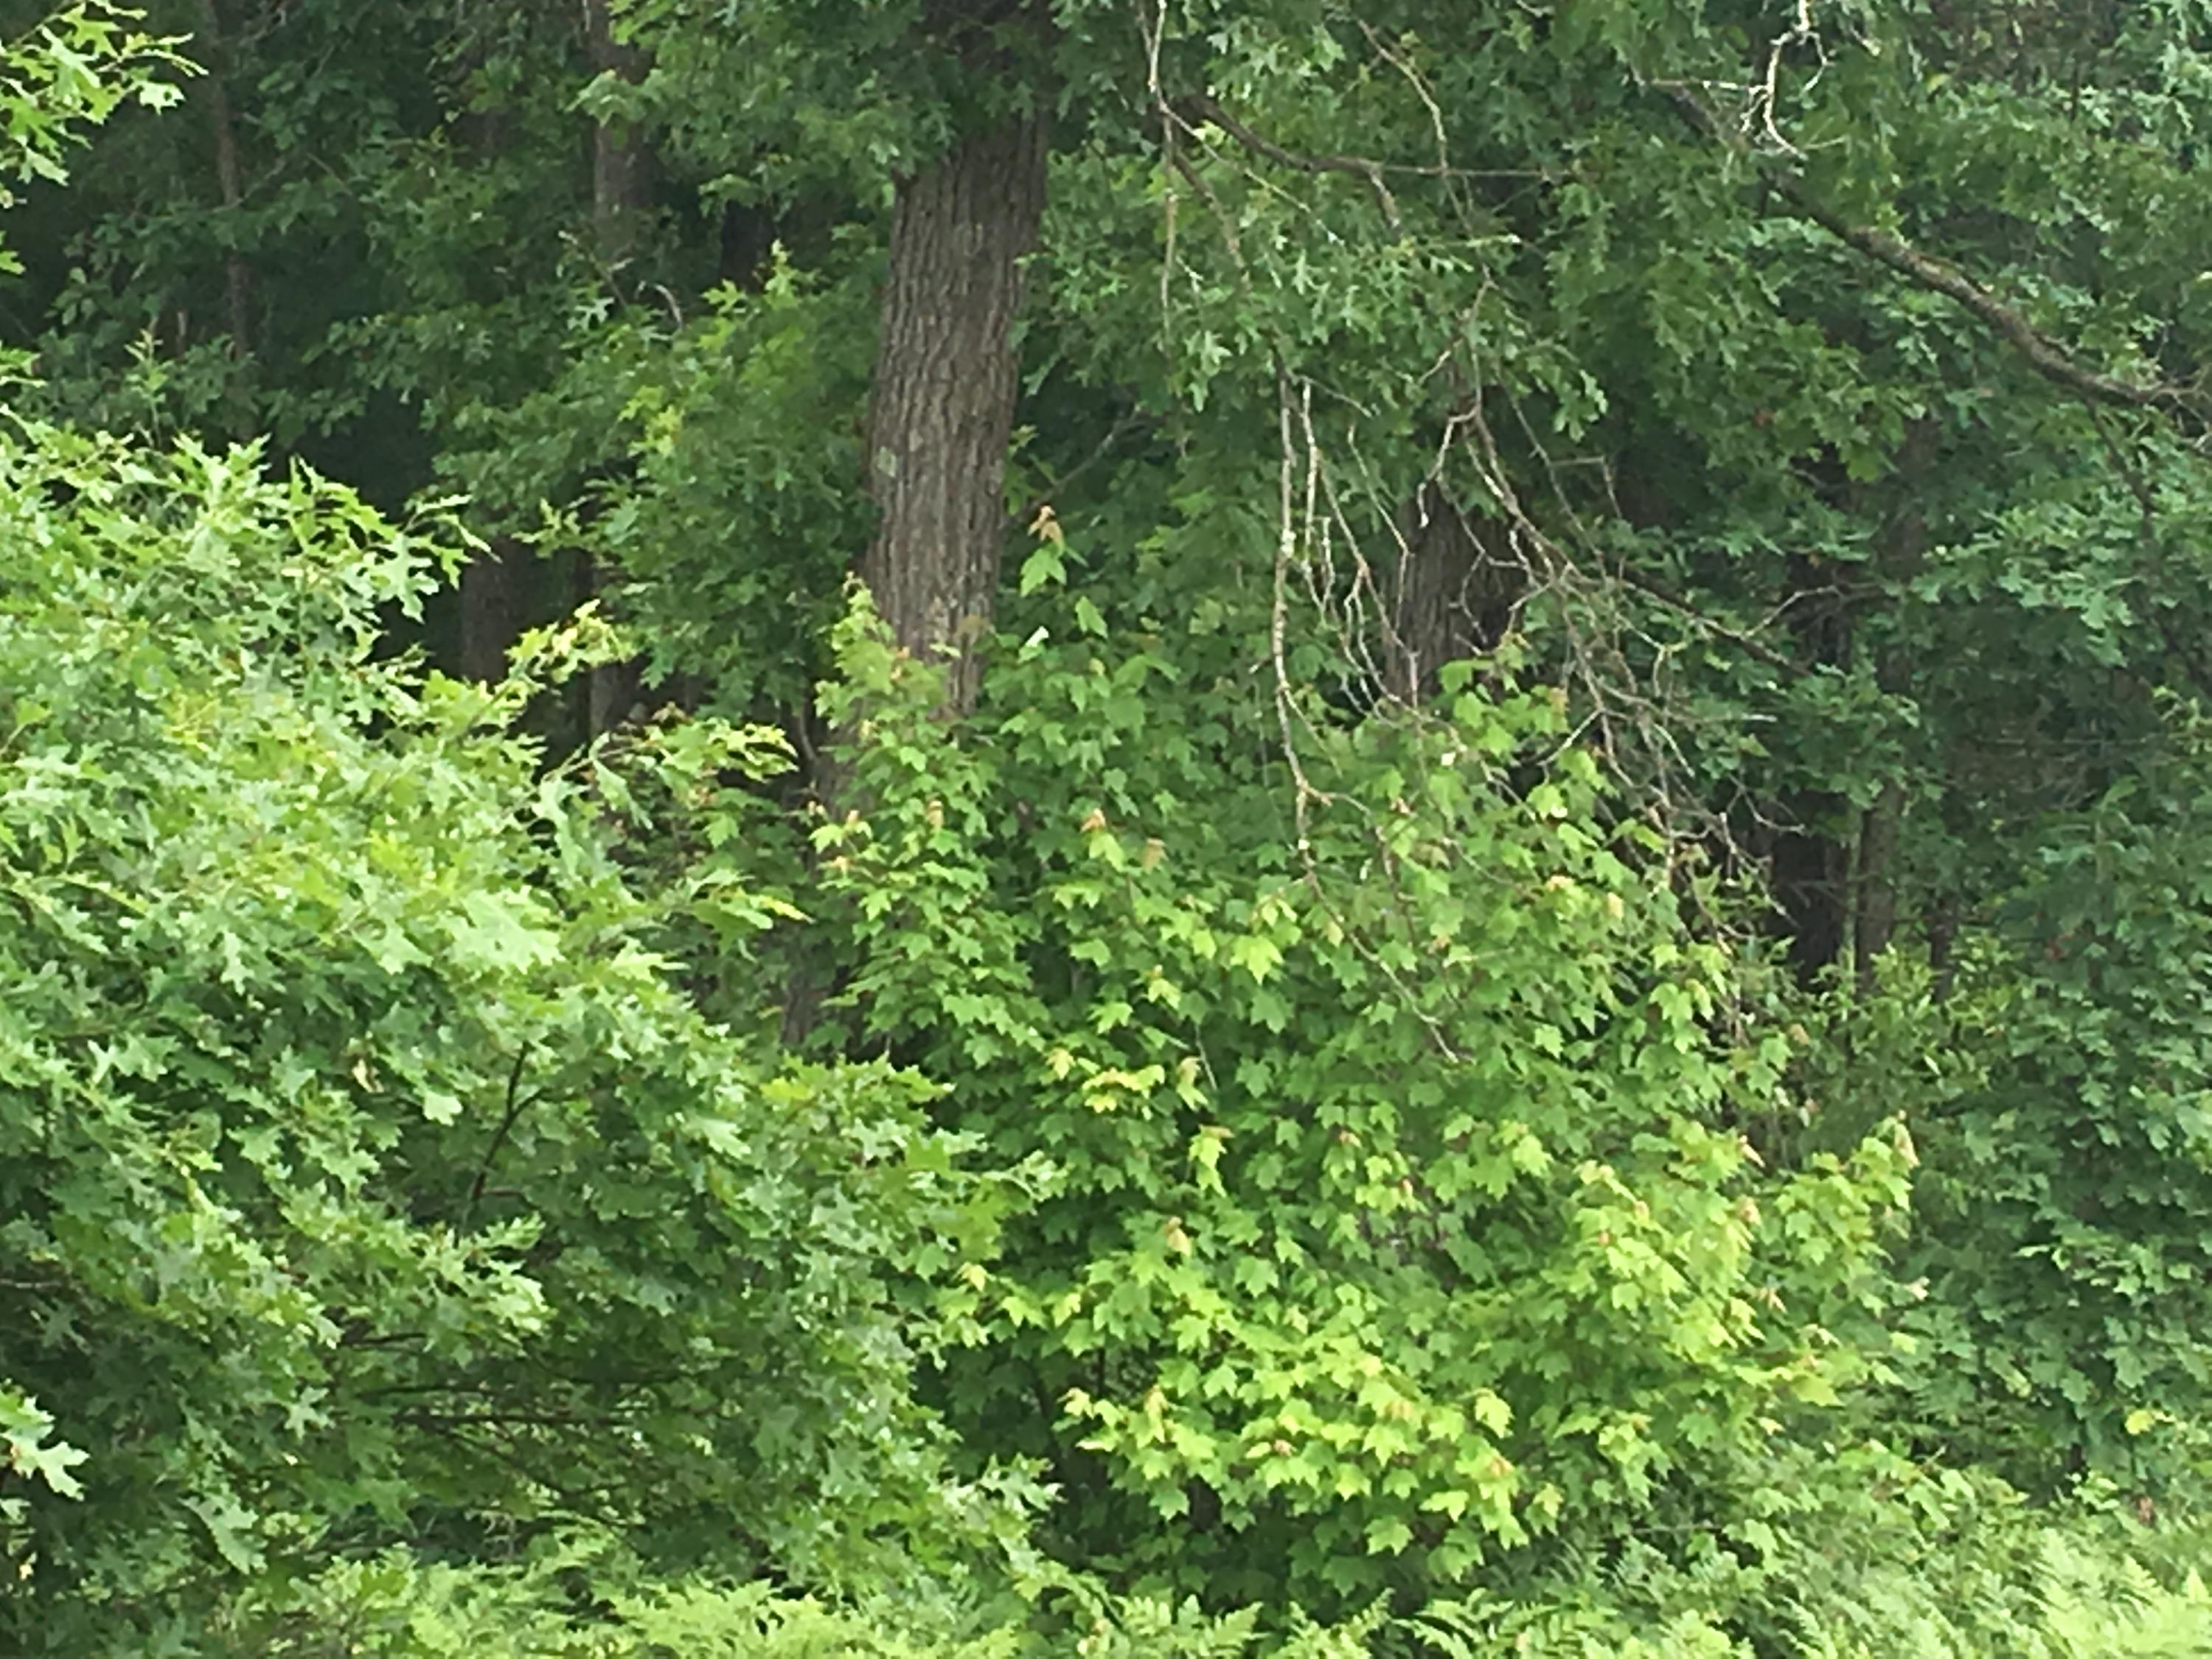 0 COUNTY HIGHWAY PP, Byron, Wisconsin 54660, ,Vacant Land,For Sale,COUNTY HIGHWAY PP,1705201